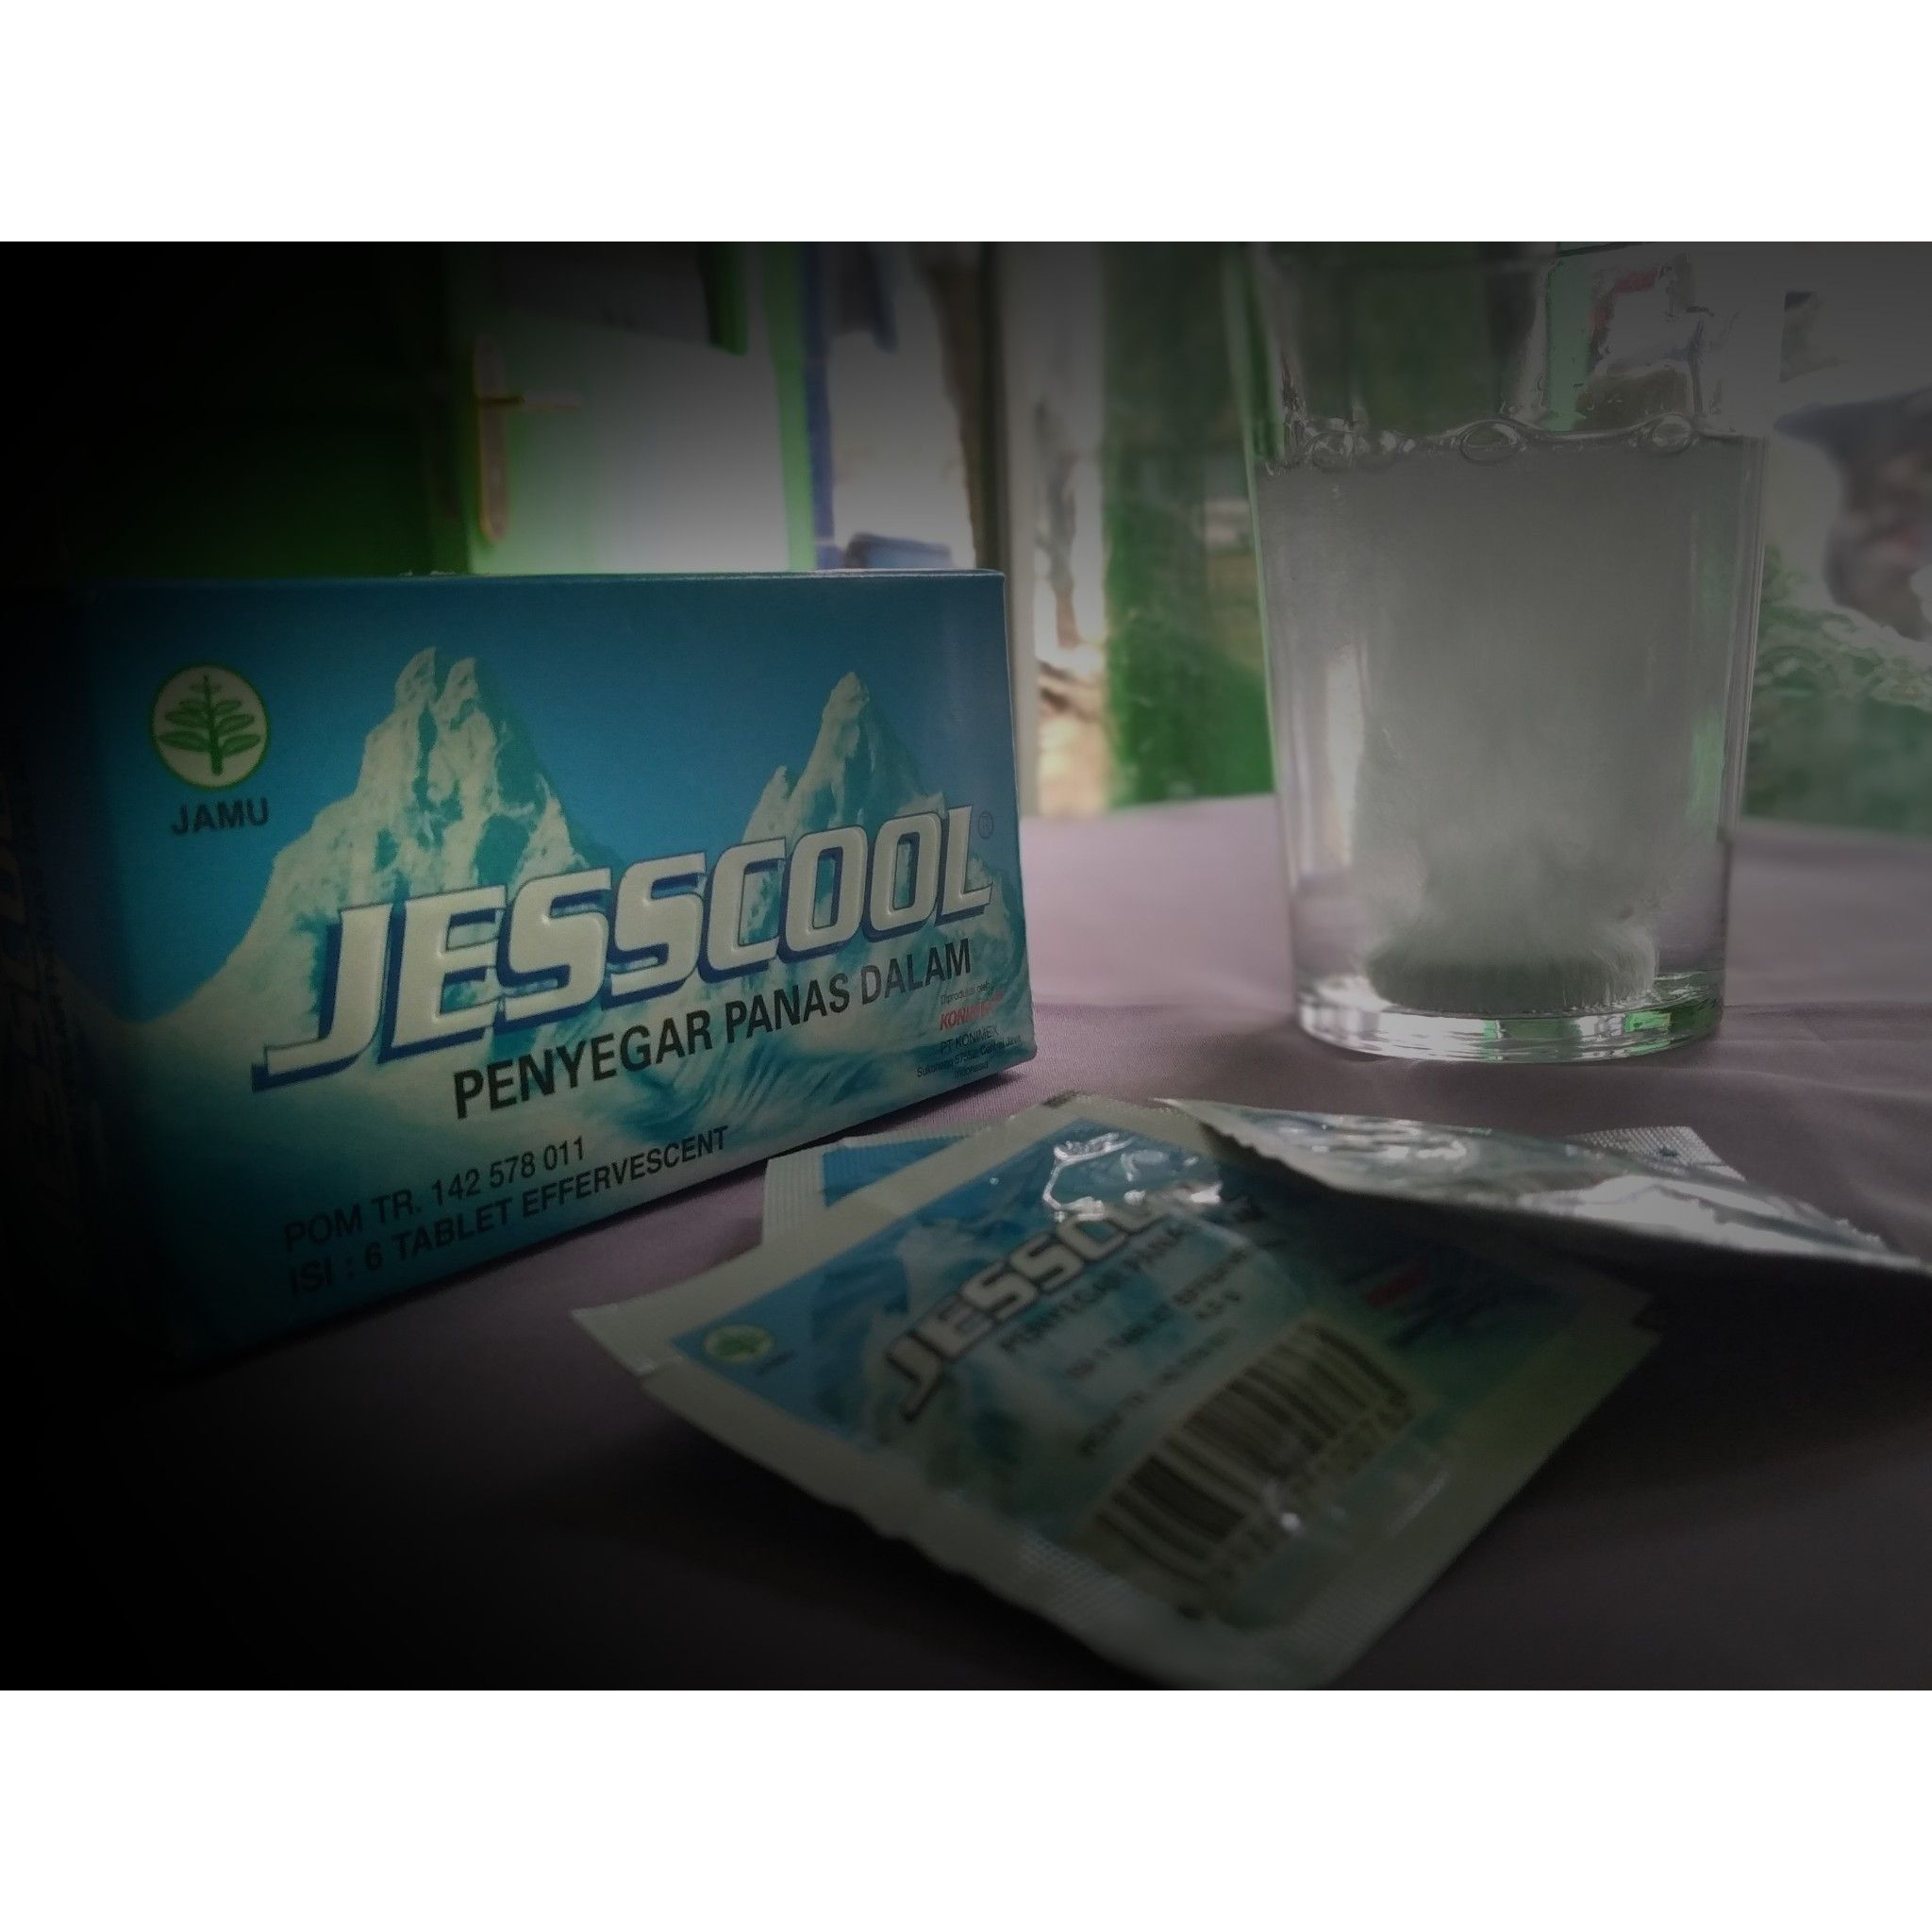 image review Jesscool Jeruk Nipis